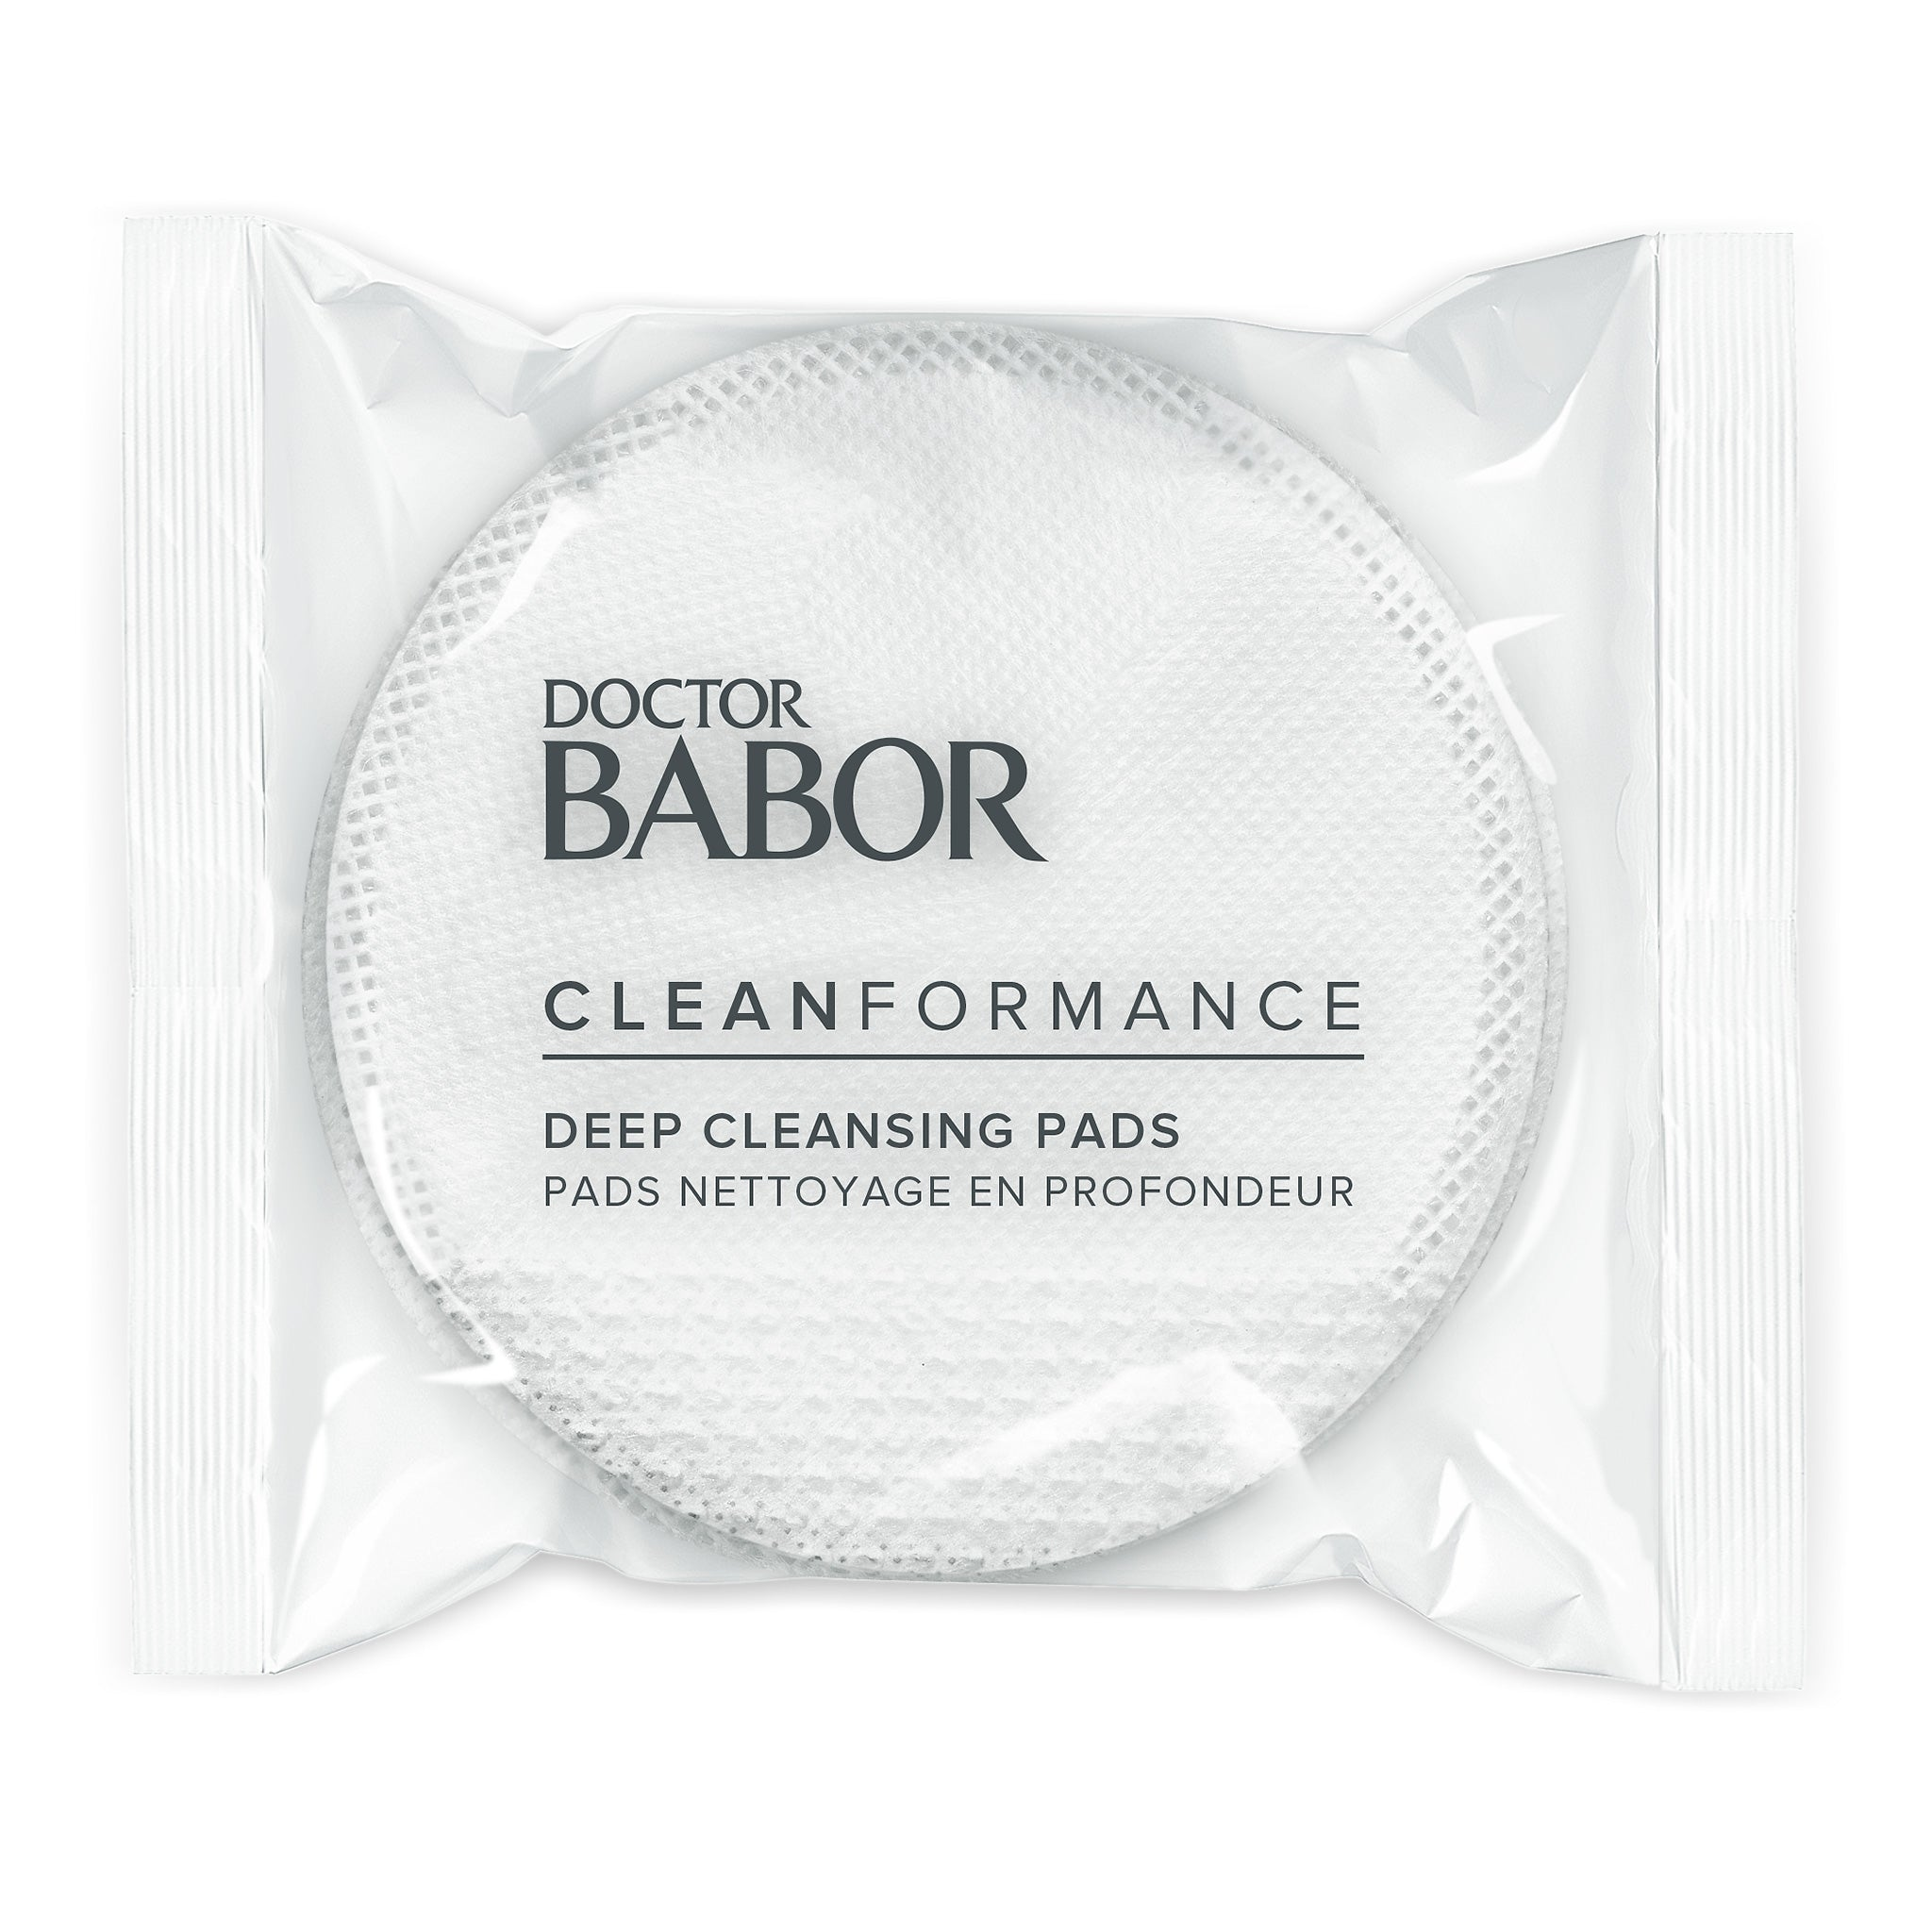 Deep Cleansing Pads Refill